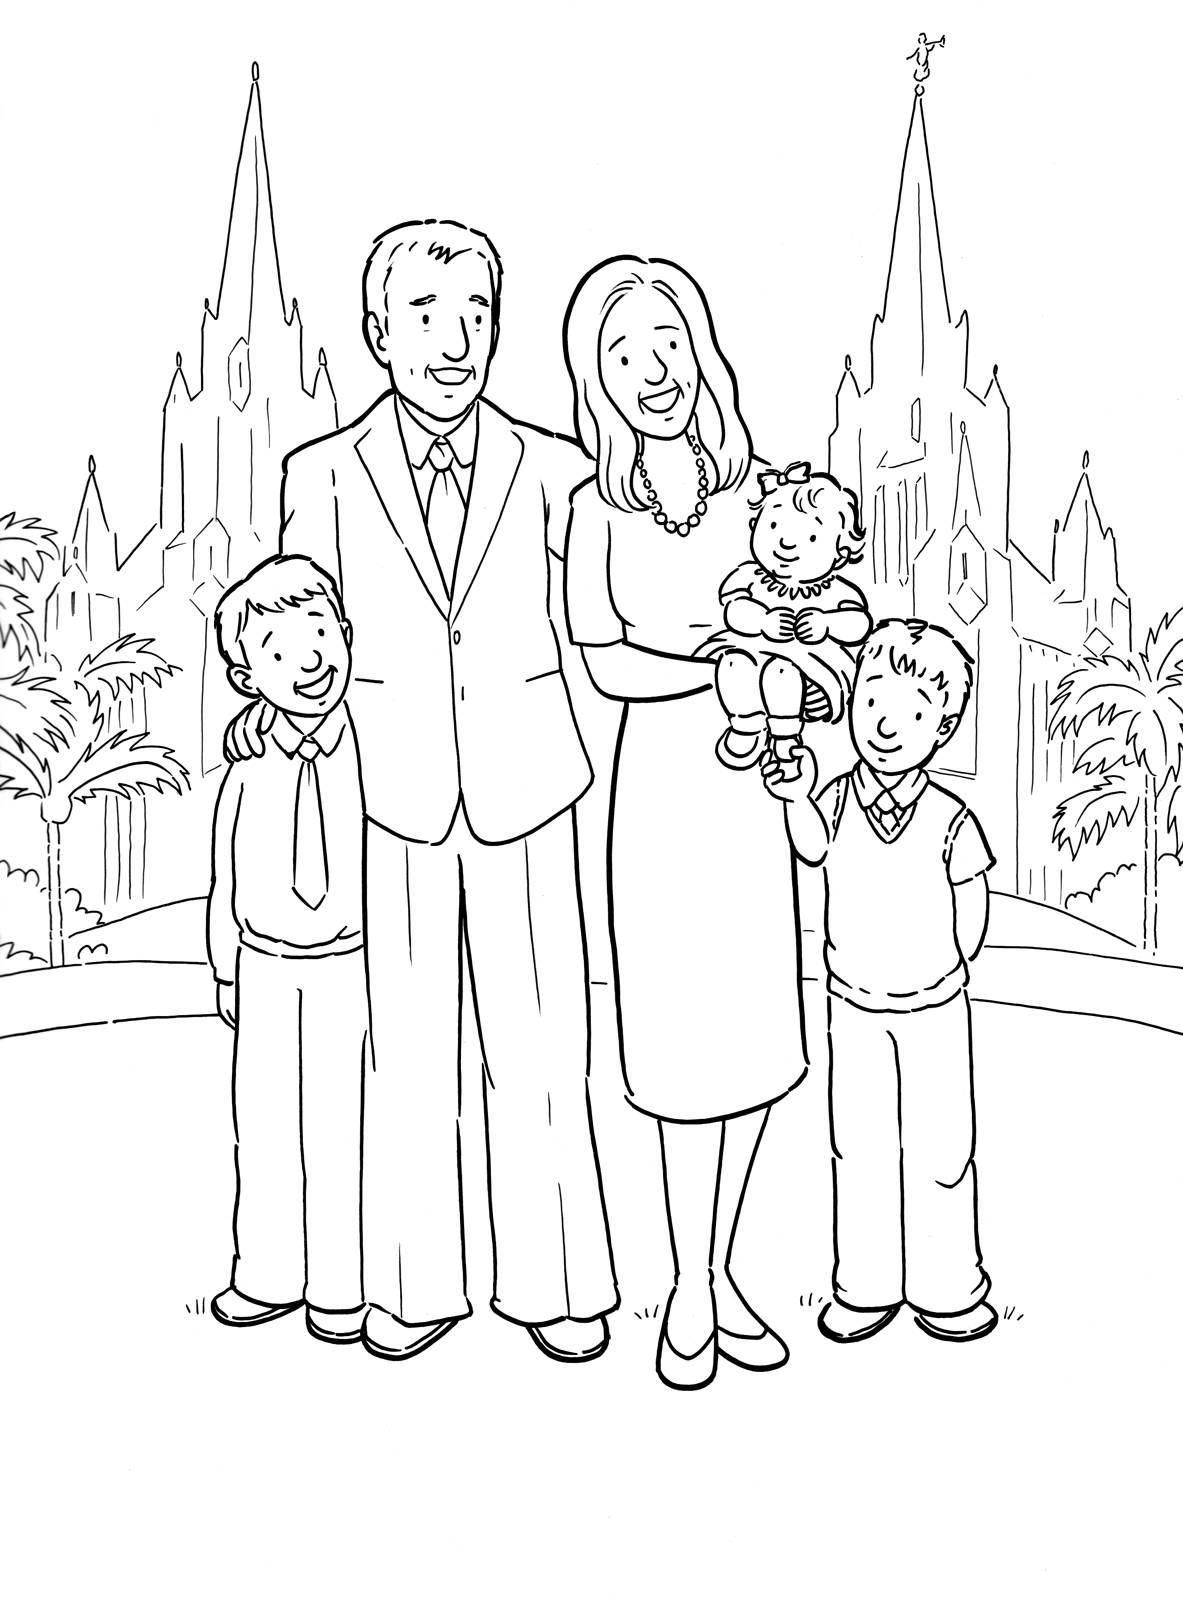 Temple marriage clipart 3 » Clipart Station.